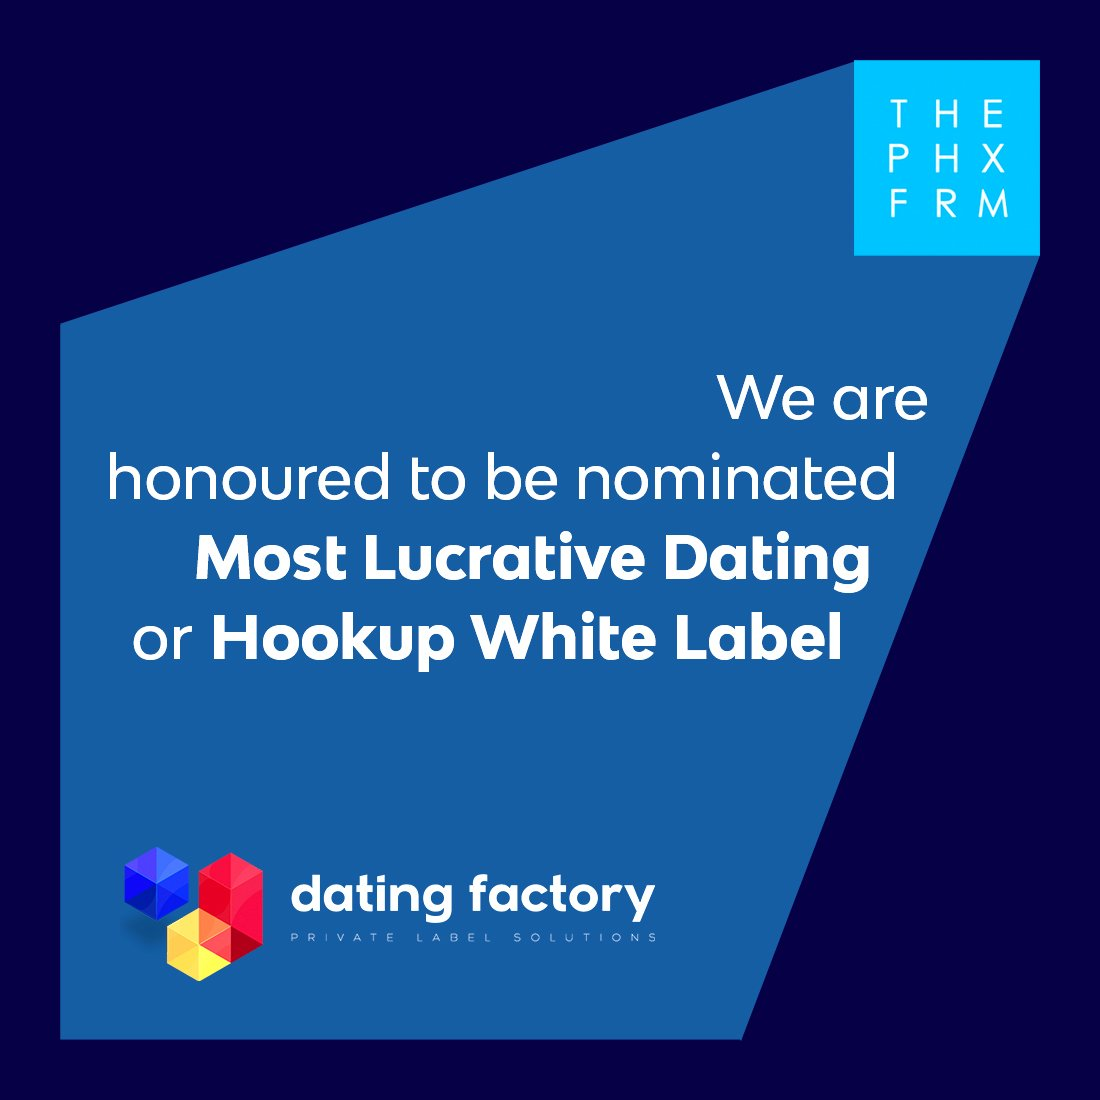 White label dating solutions